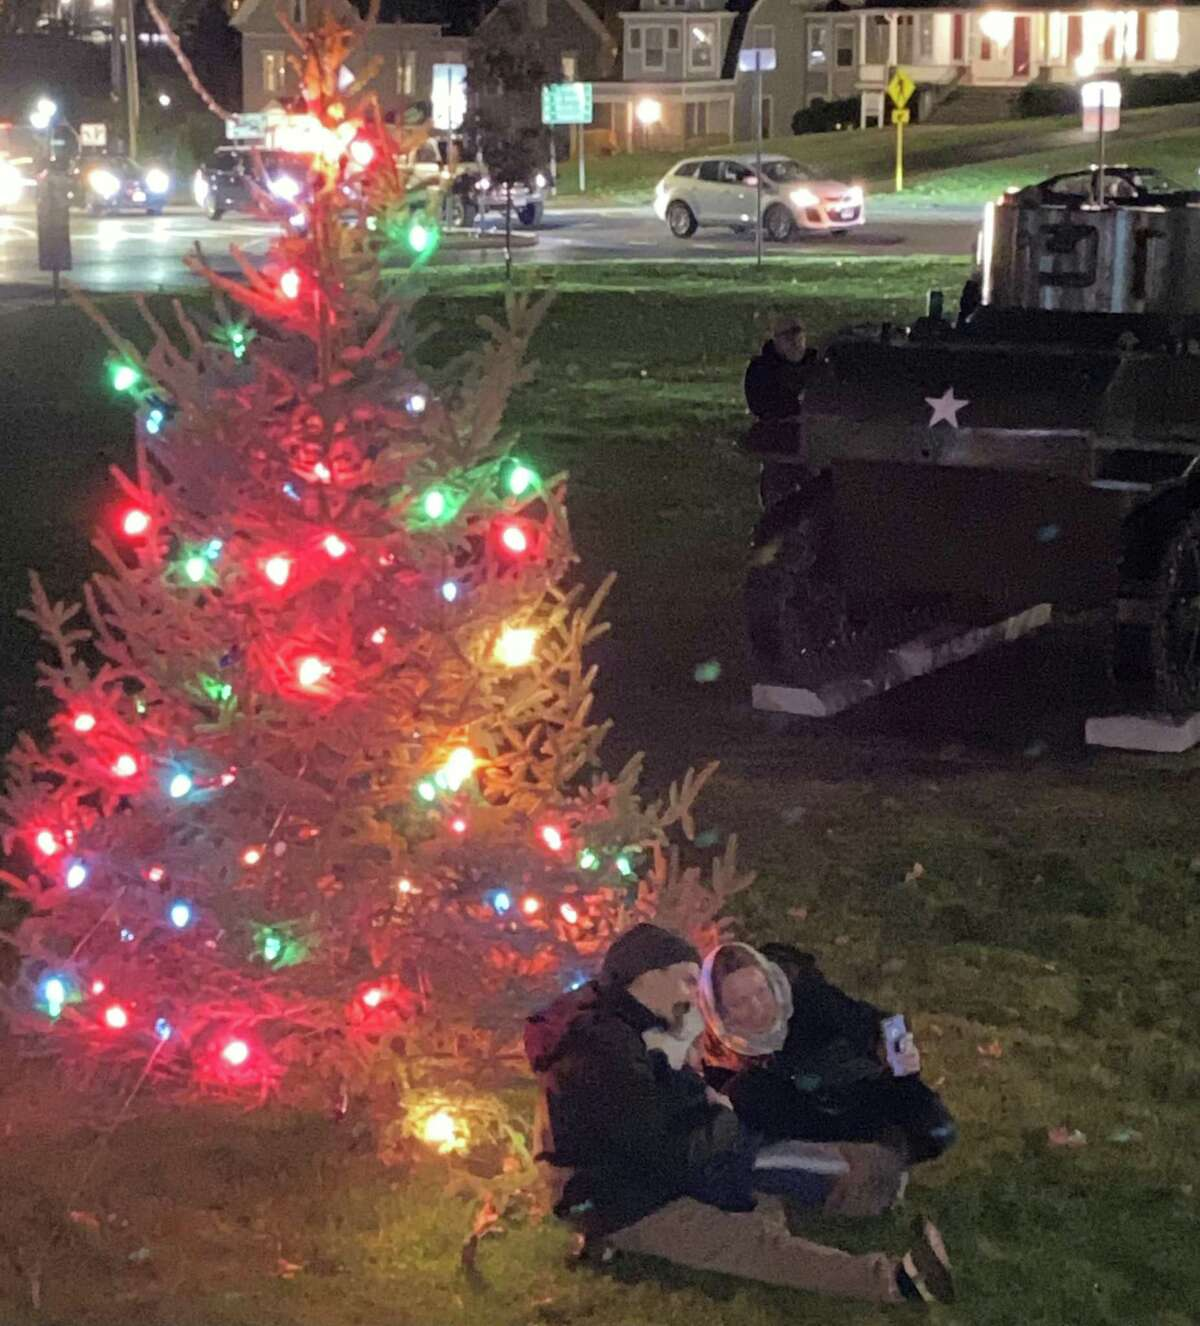 A young family takes their photo in front of one of the lighted trees.